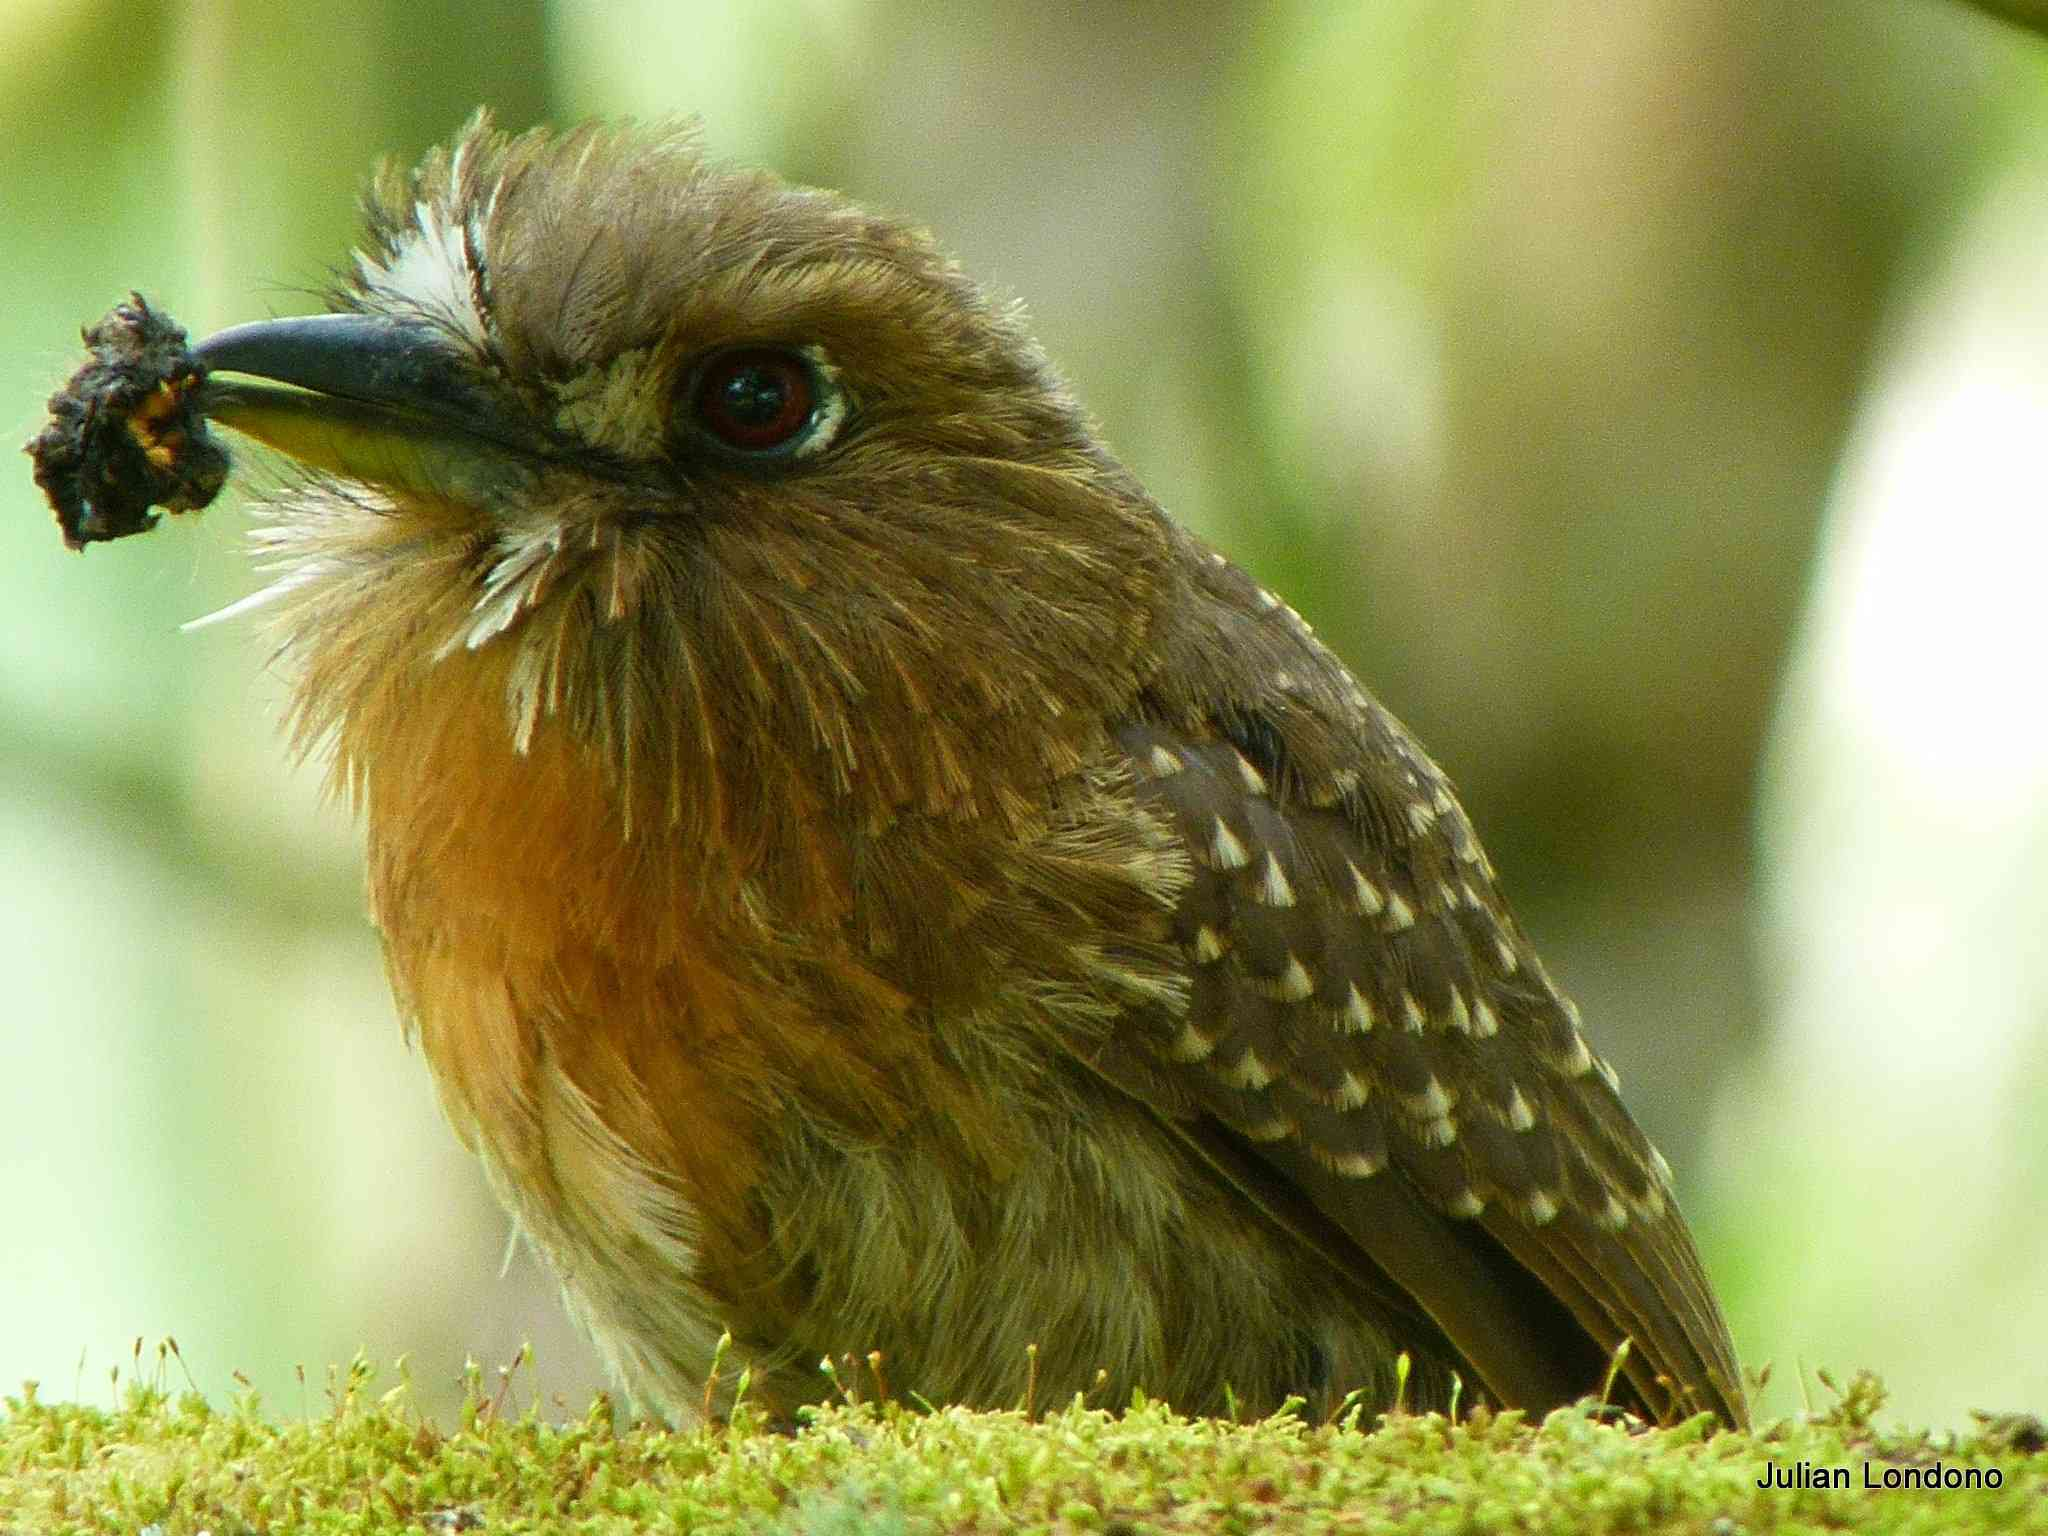 brown moustached puffbird sitting on grass